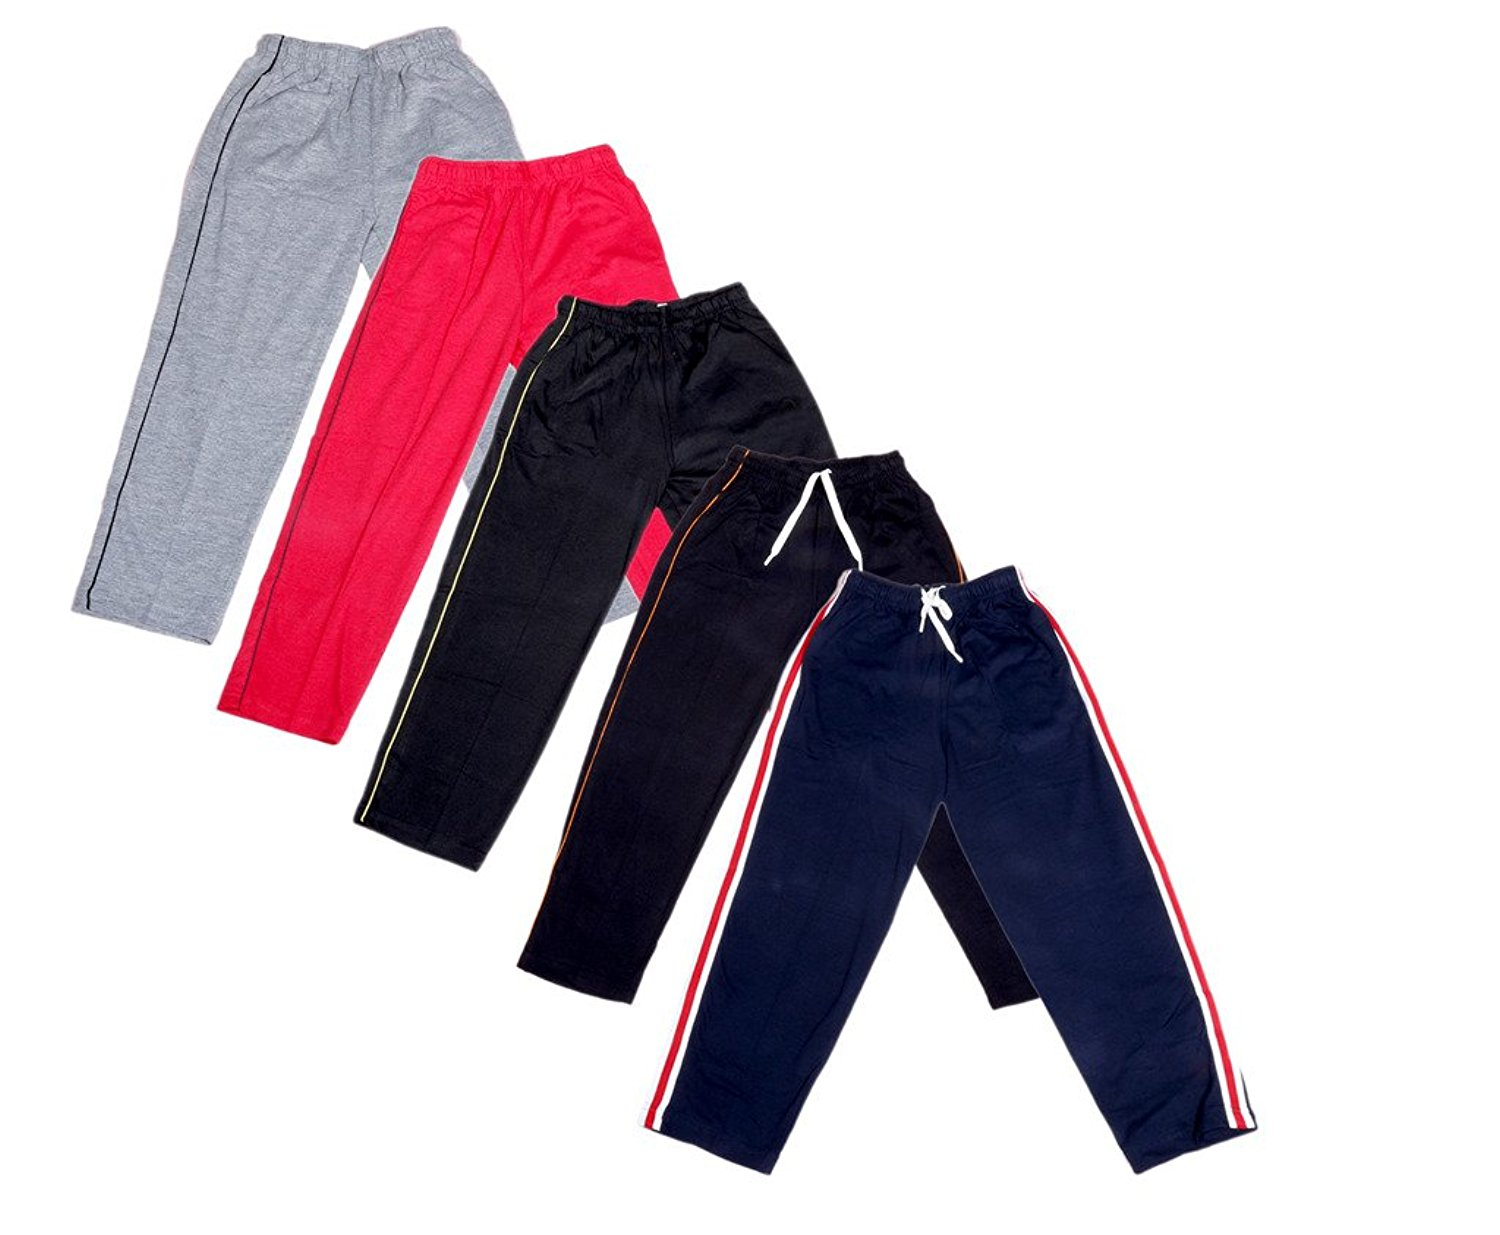 Indistar Boys Premium Cotton Full Length Lower//Track Pants//Pyjamas With 2 Open Pockets Pack Of 3